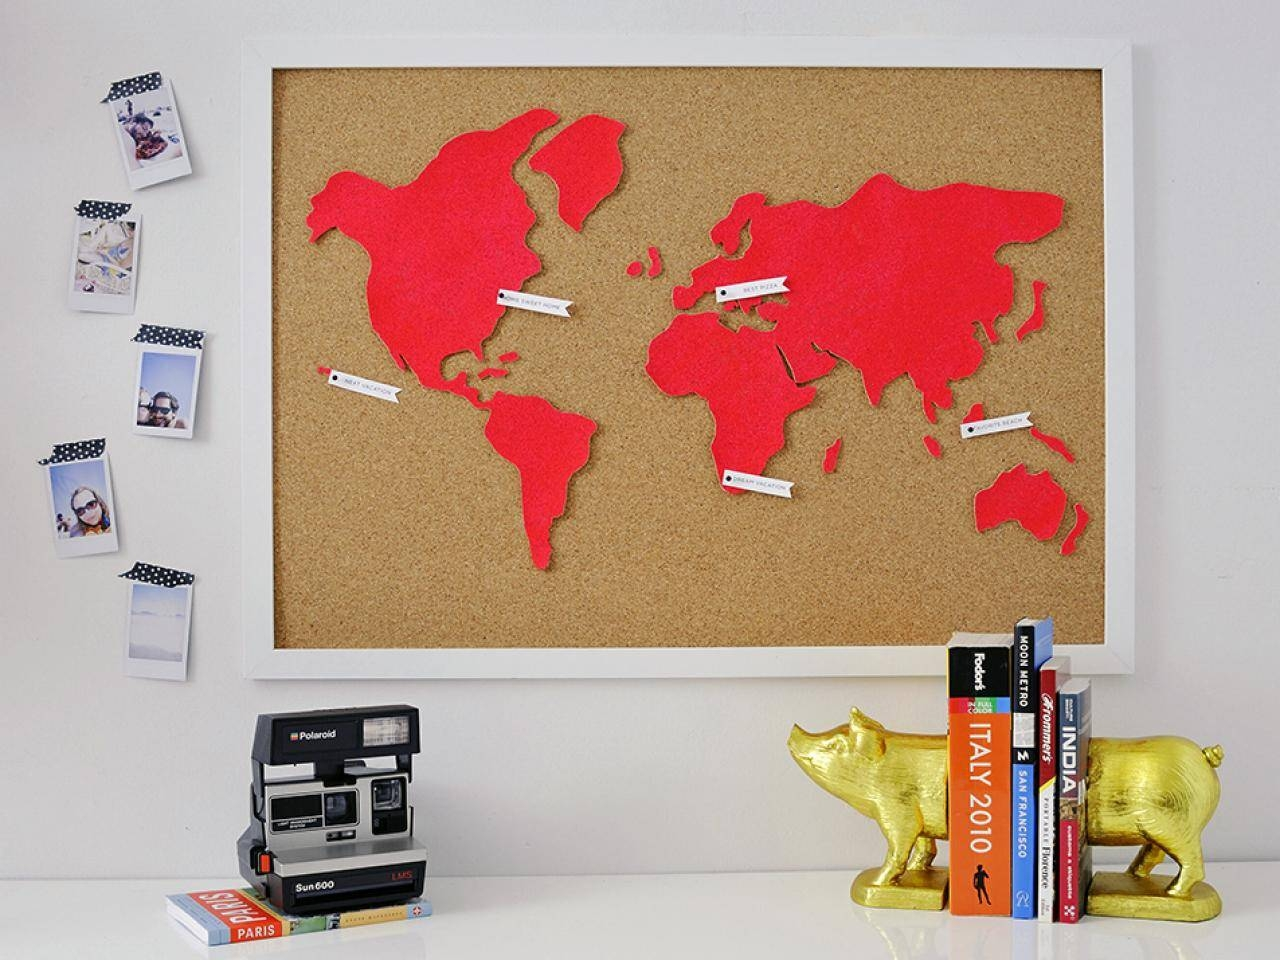 Diy Wall Art: Make A Custom Corkboard World Map | Hgtv Intended For Most Up To Date Map Wall Artwork (View 5 of 20)